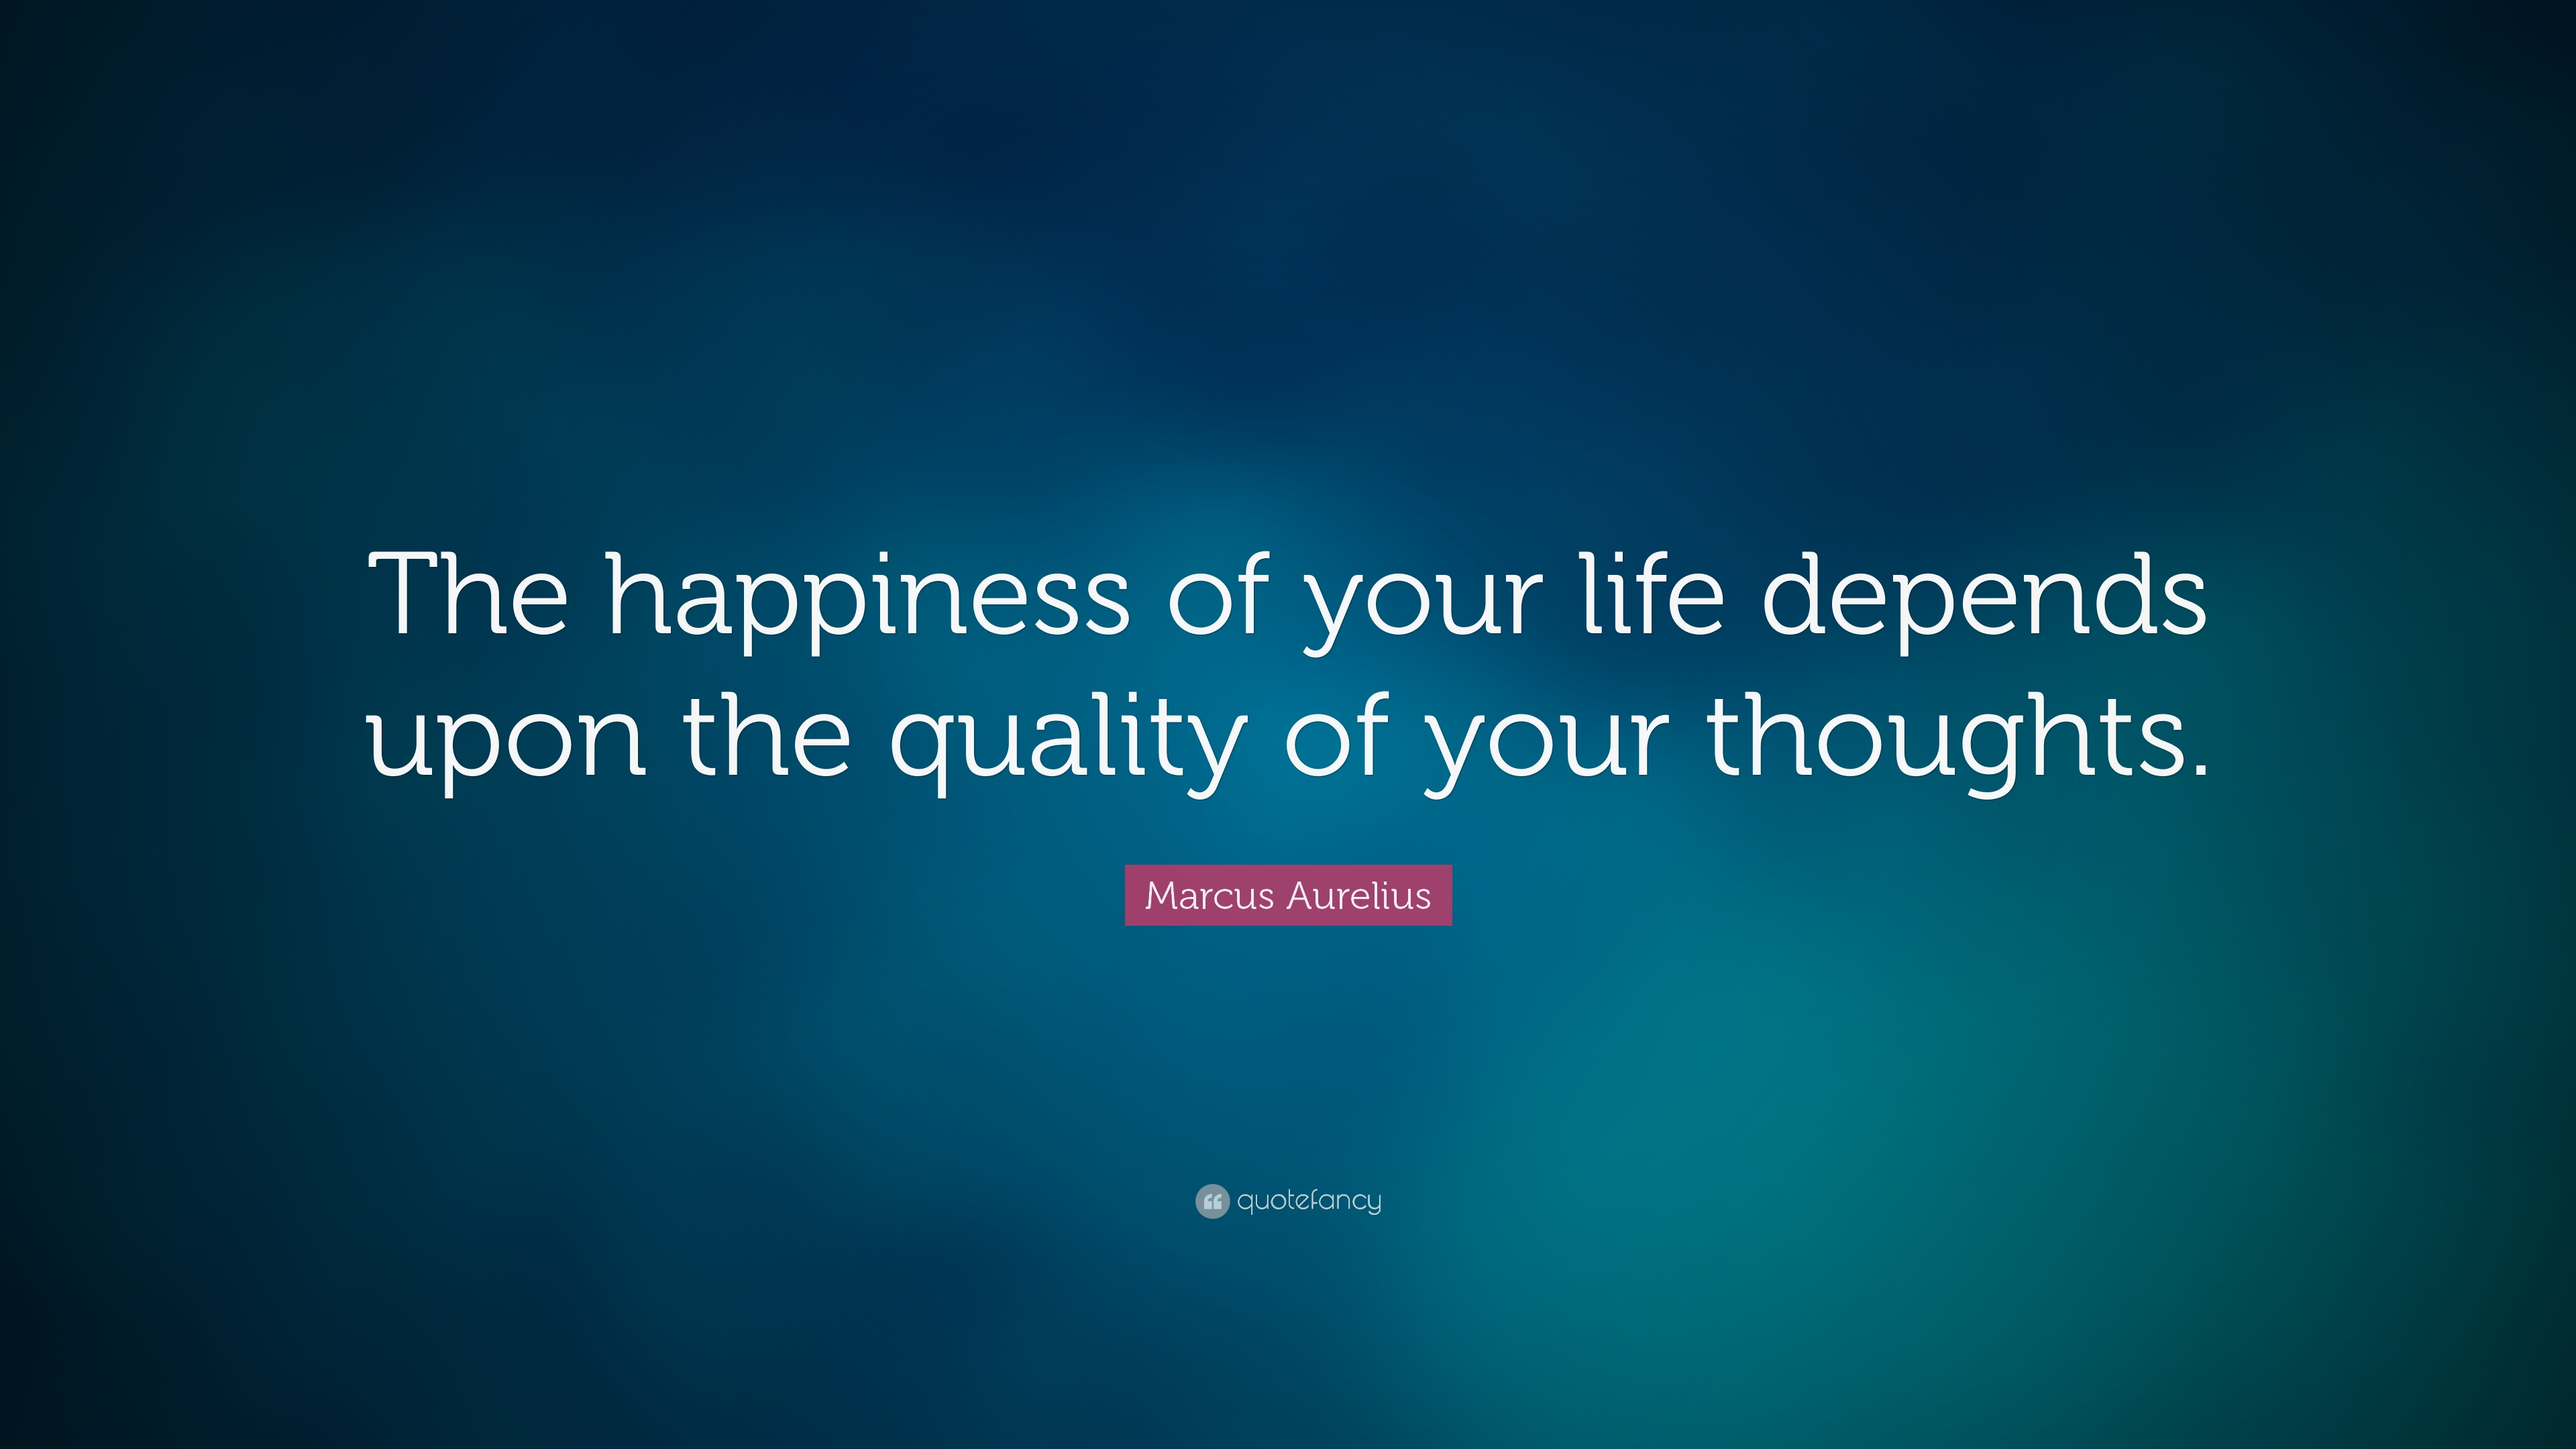 Dalai Lama Quotes Wallpapers Marcus Aurelius Quote The Happiness Of Your Life Depends